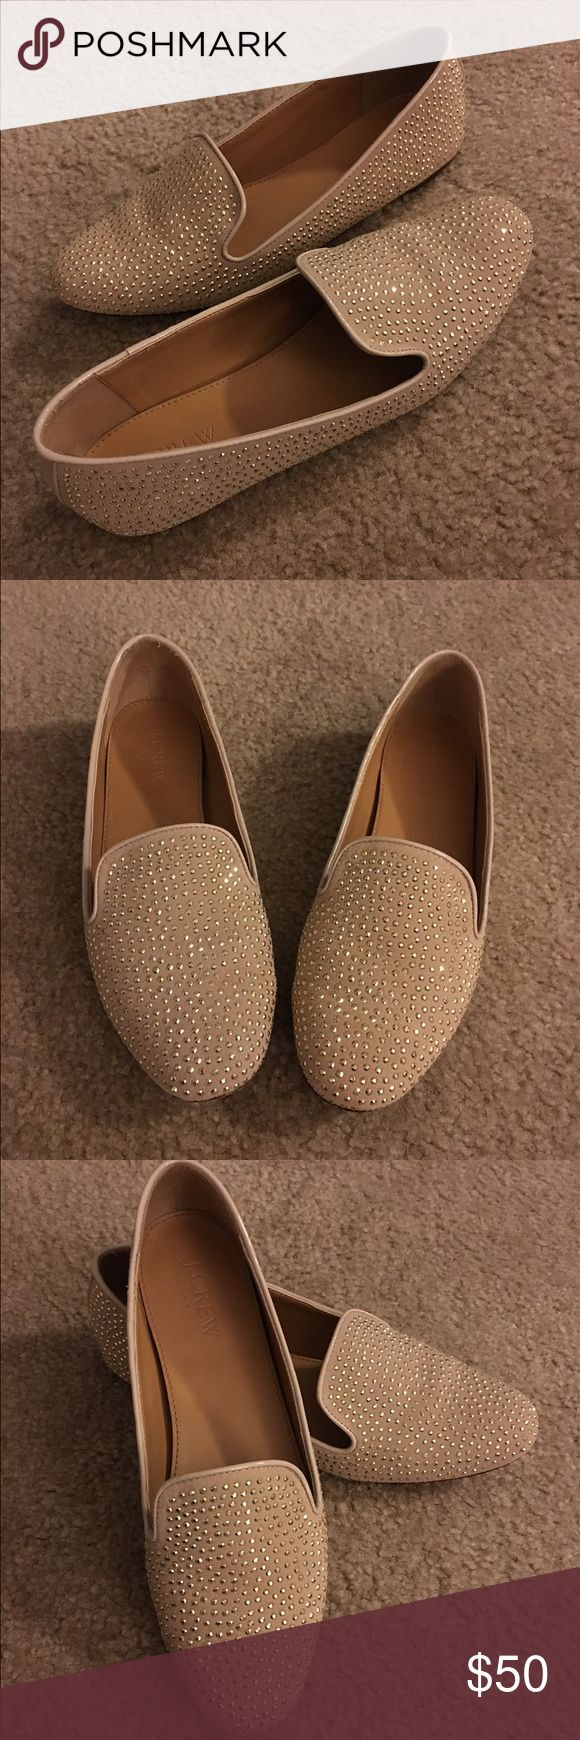 J.Crew Factory Addie Suede Studded Loafers Nude suede flat with gold studs all over. Patent trim. Great condition. J. Crew Shoes Flats & Loafers